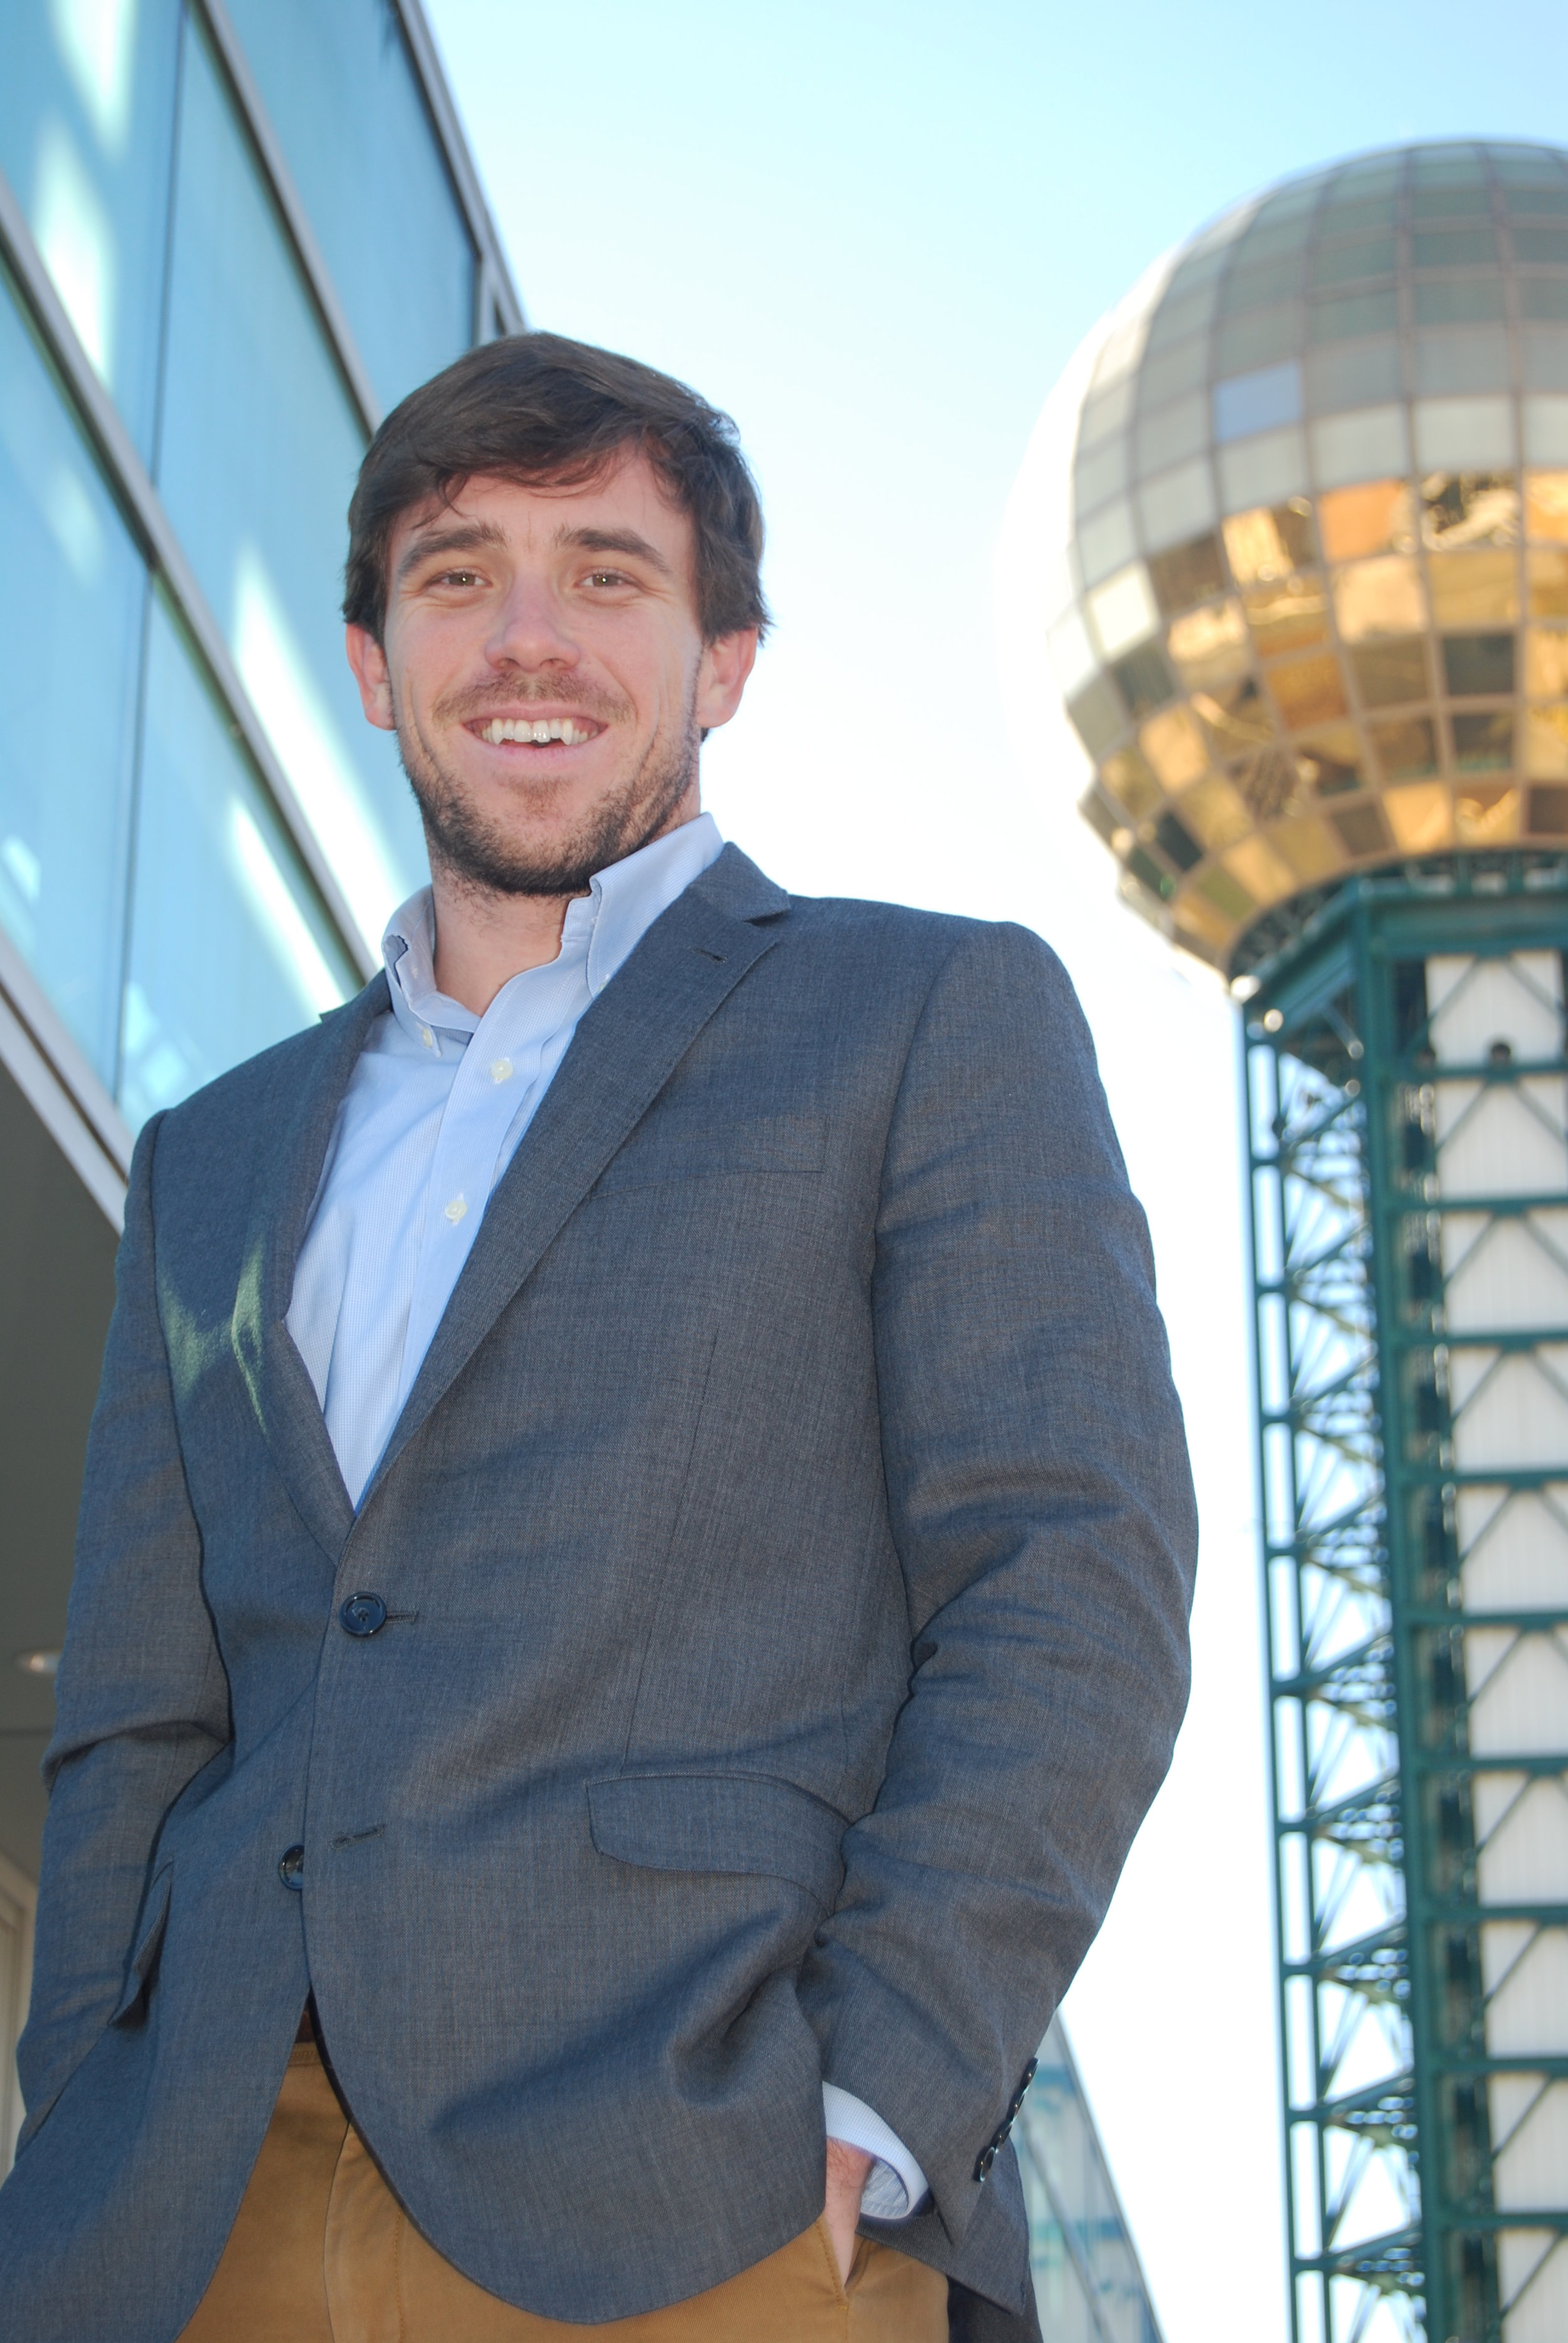 carson mcwhorter - Carson graduated from the University of Tennessee in 2009 with a degree in Business Administration. After graduation, he worked with Empire Construction as an assistant project manager for nearly three years before joining Market Realty, LLC in 2012. He is an experienced commercial and residential broker, and has worked extensively with buyers, sellers and tenants alike. He also has significant experience in both residential and commercial construction and renovation work.